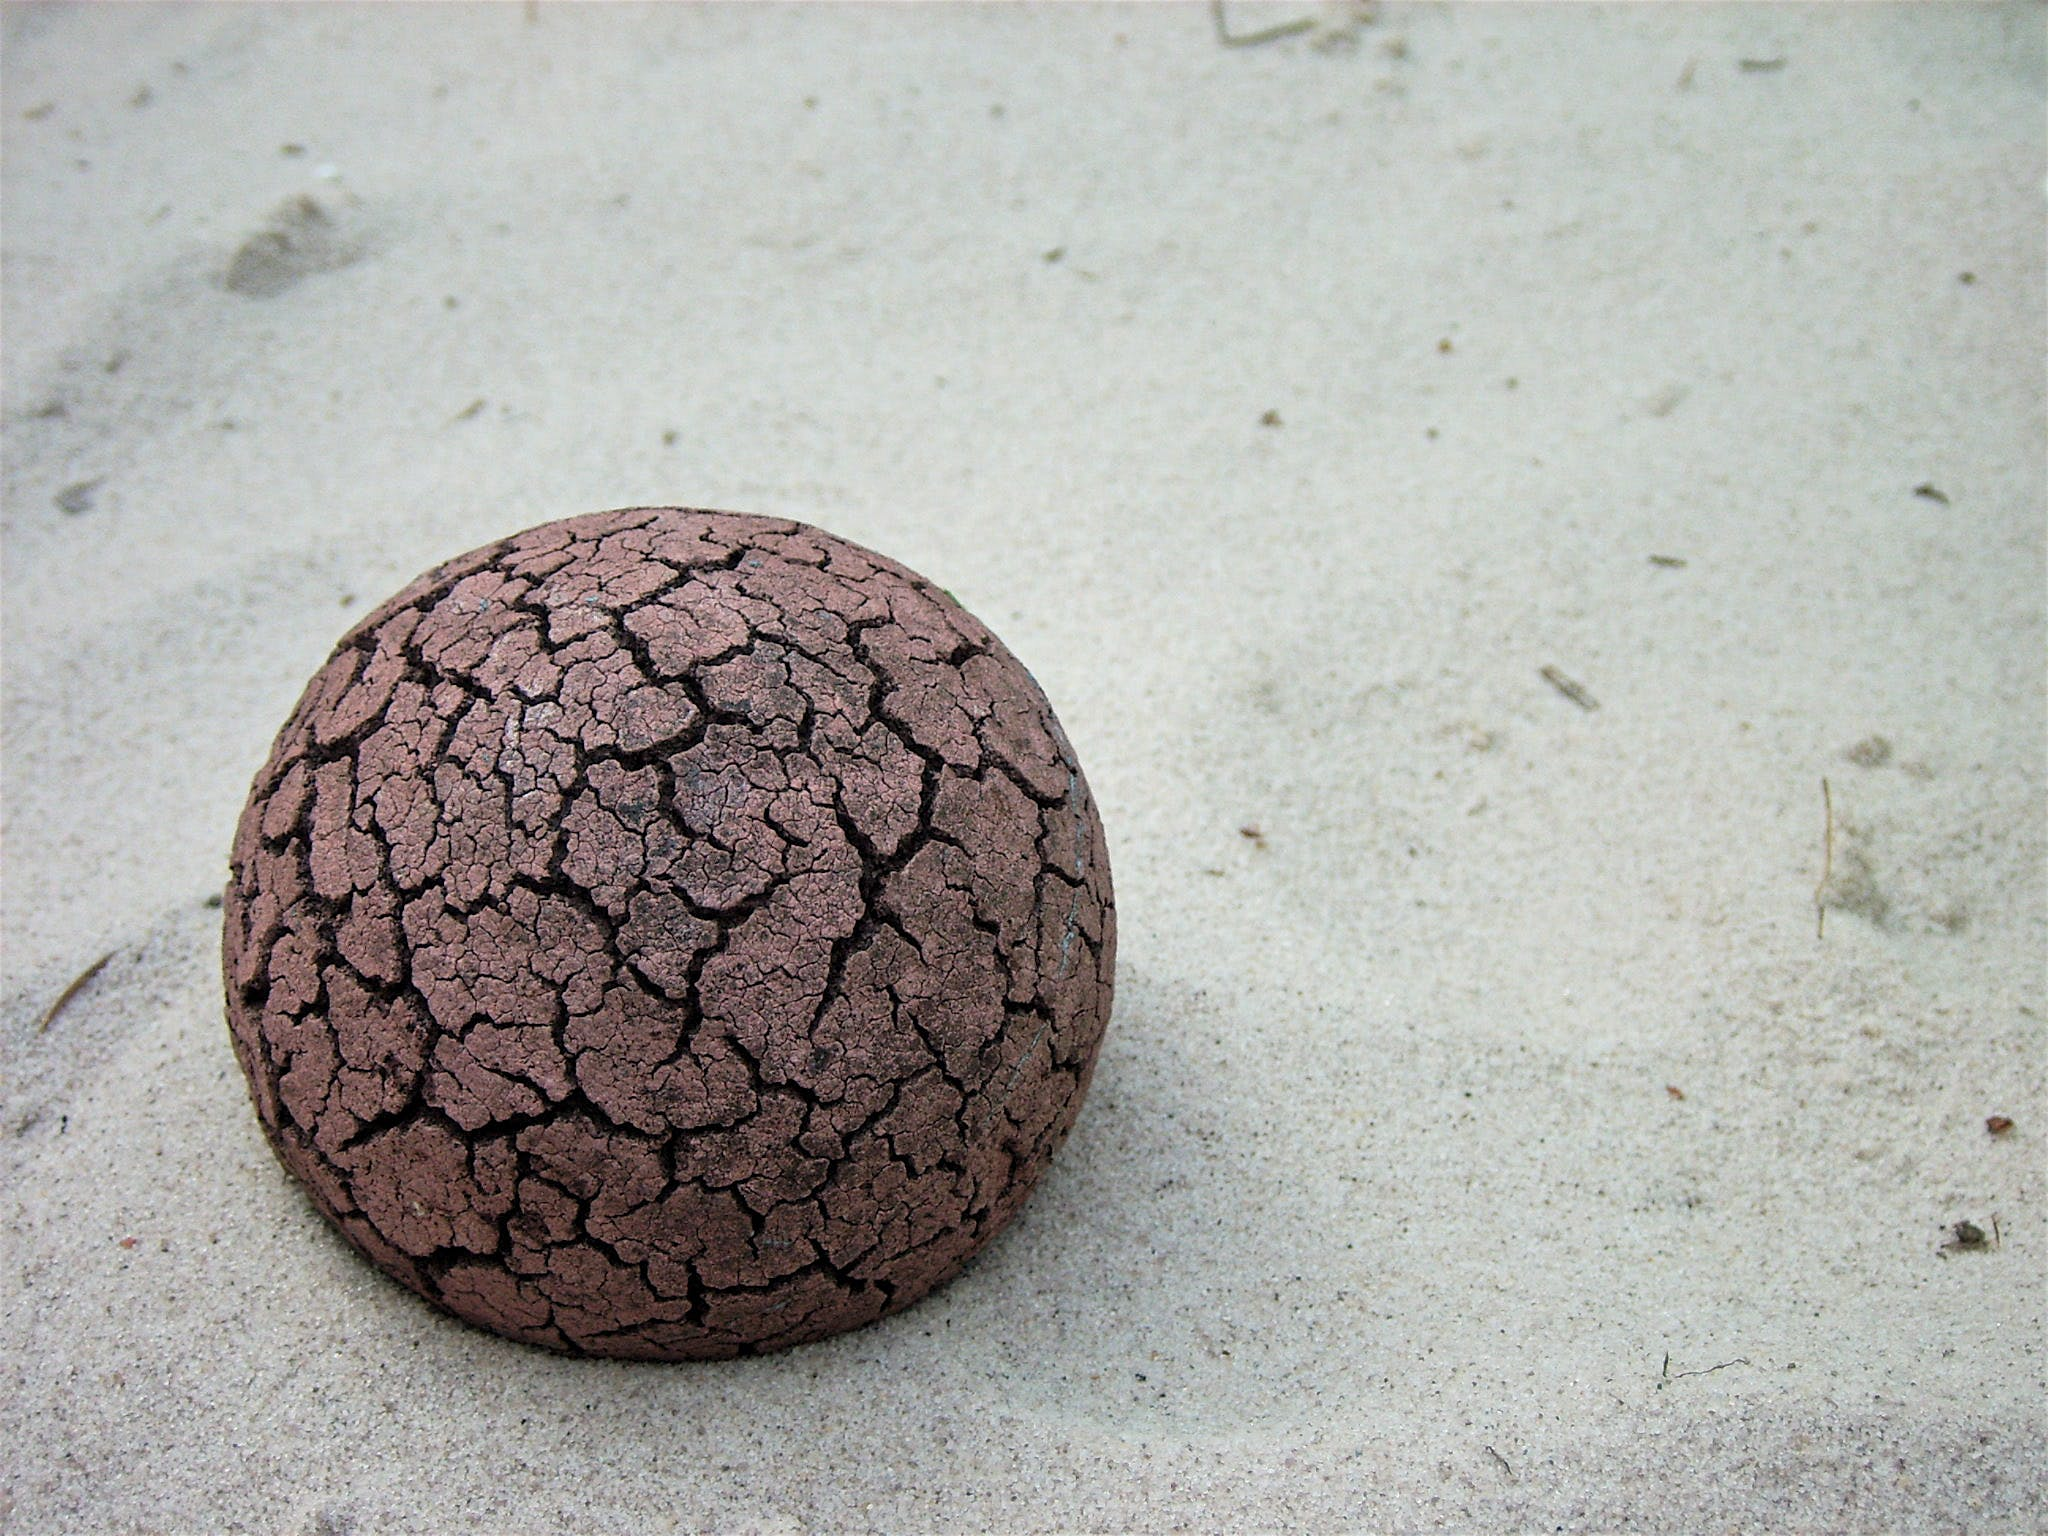 Free stock photo of cracked ball, sand